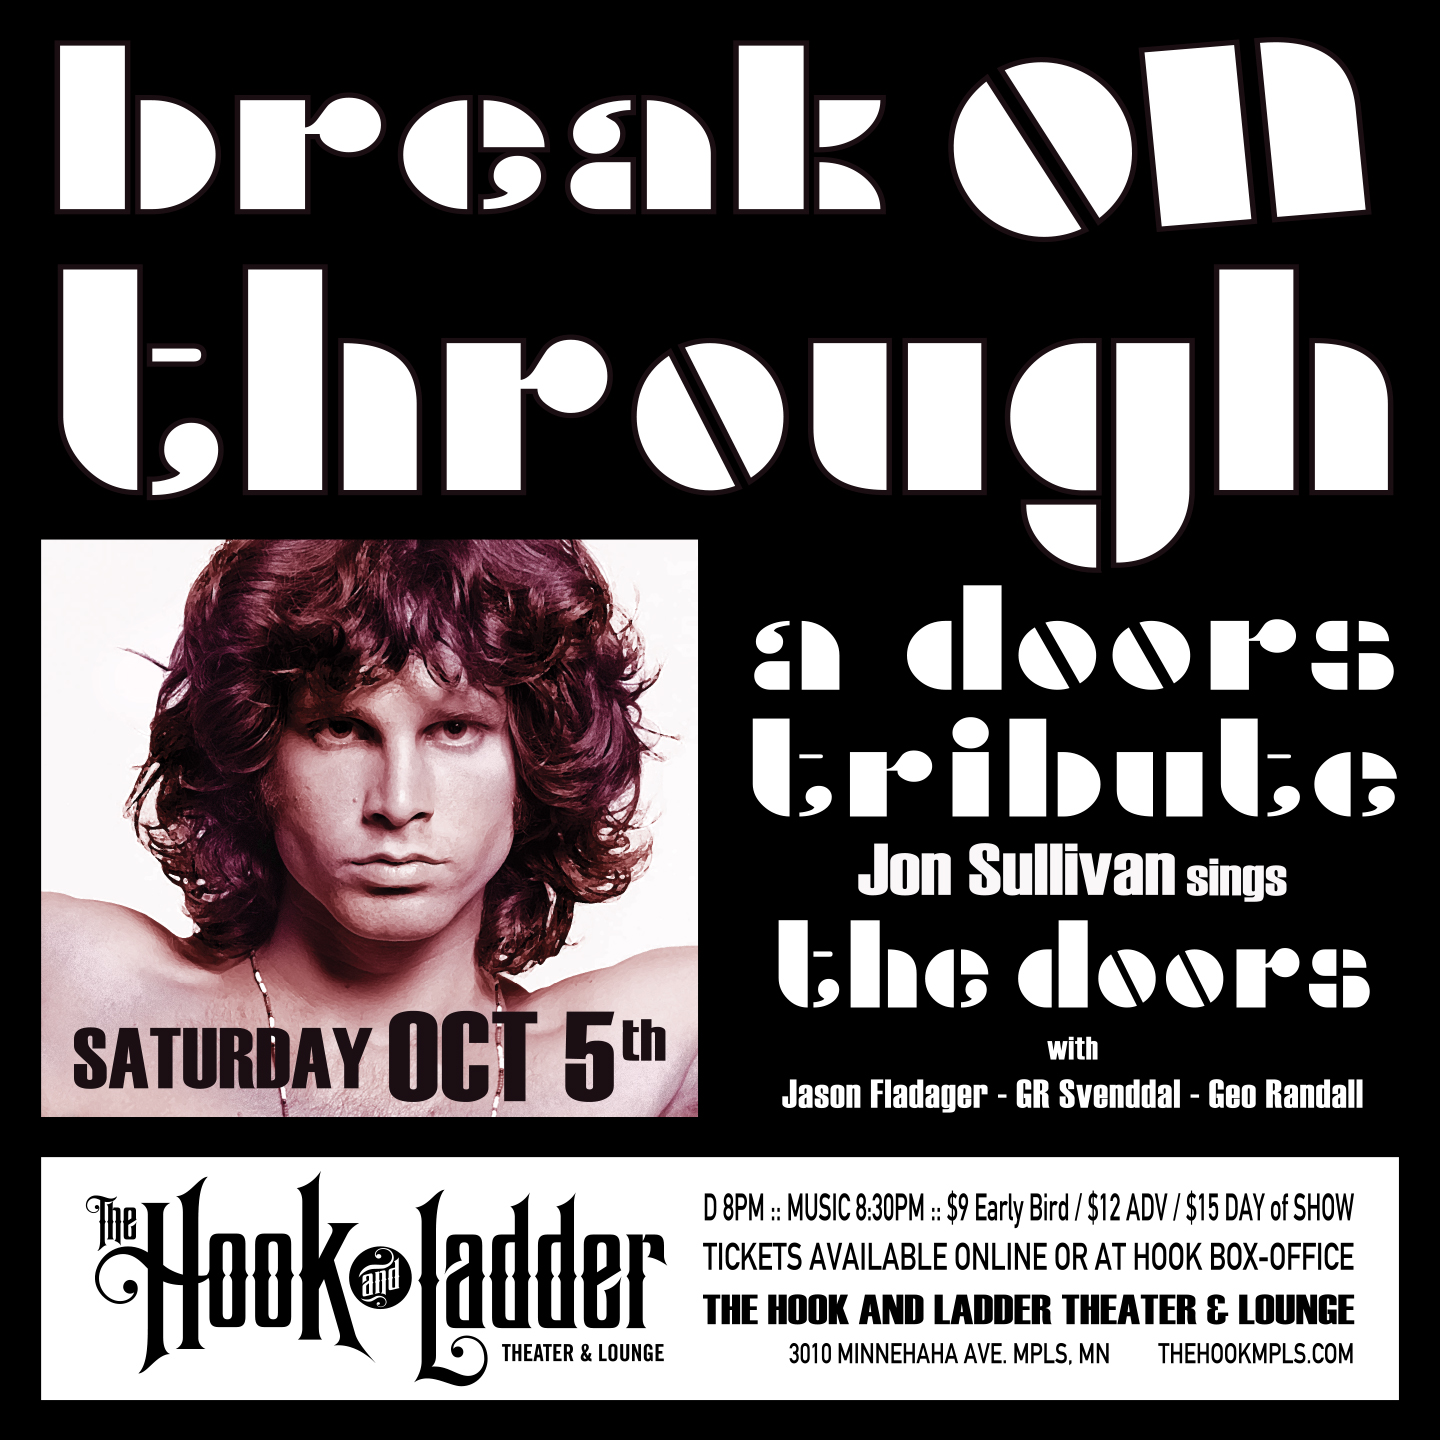 Break on Through ~ A Doors Tribute on Saturday, October 5 at The Hook & Ladder Theater